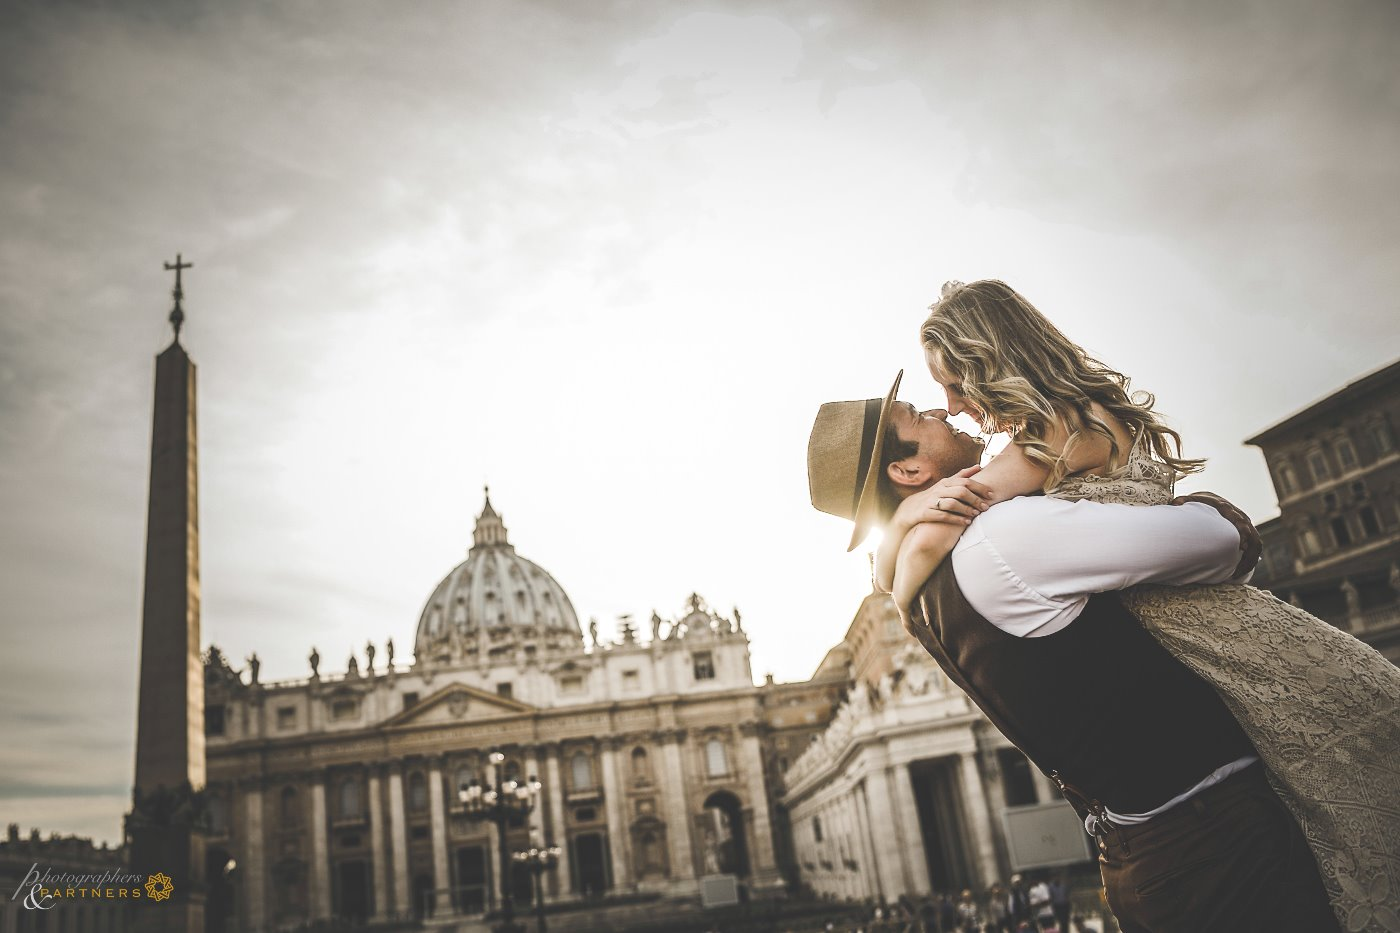 Still a romantic photo at sunset in Piazza San Pietro 🌞